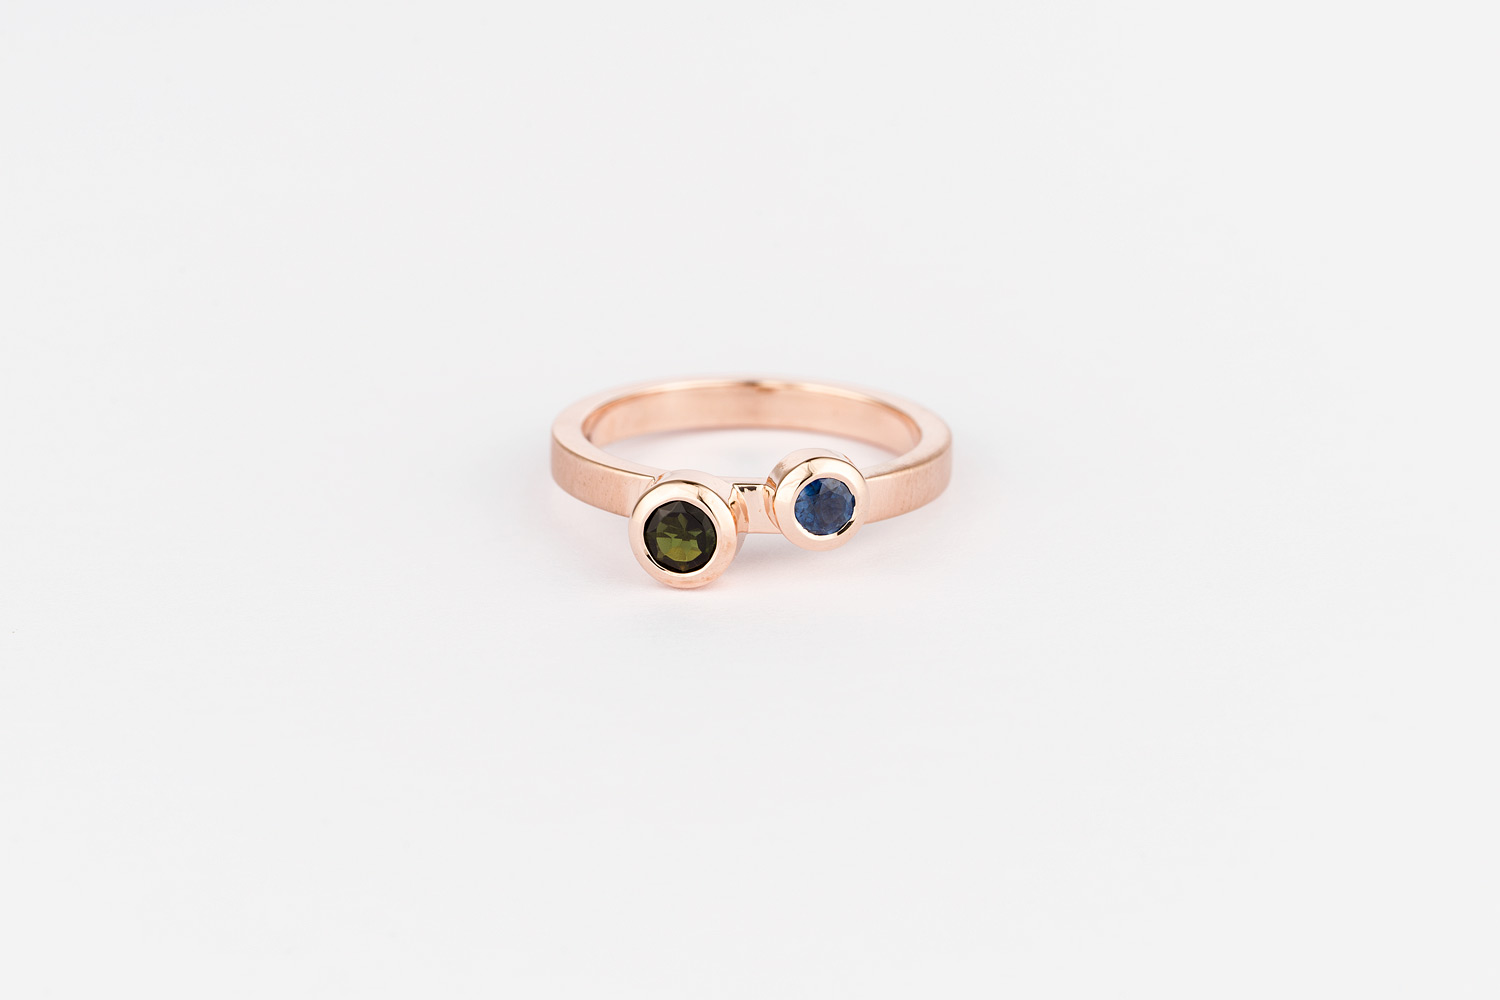 9ct rose gold / tourmaline and sapphire ring